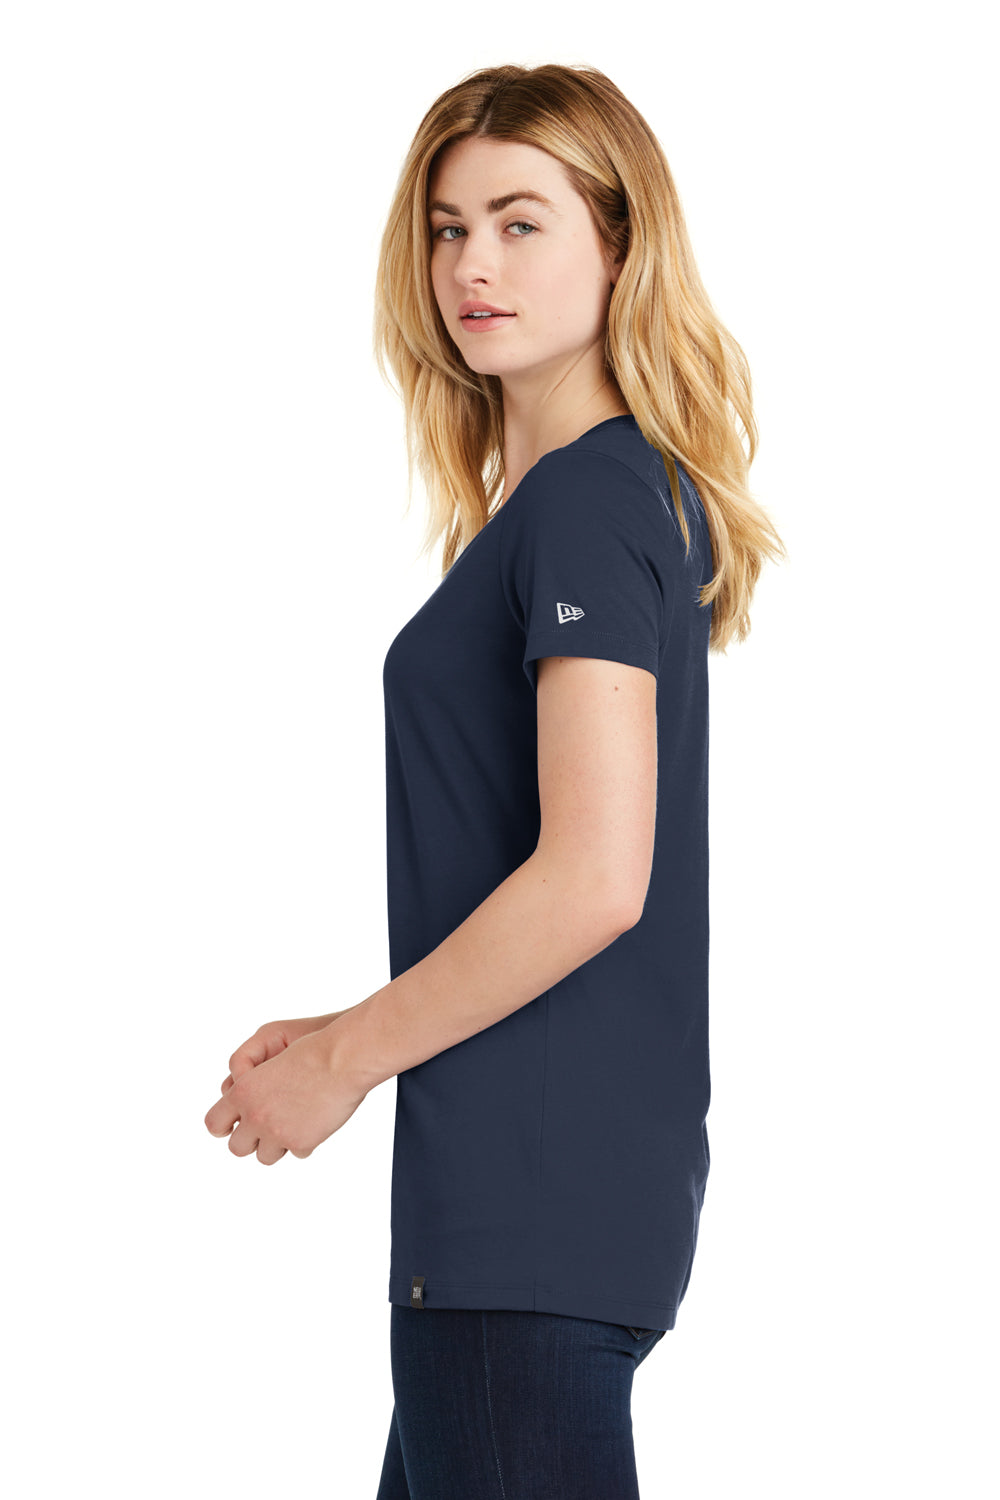 New Era LNEA101 Womens Heritage Short Sleeve V-Neck T-Shirt Navy Blue Side